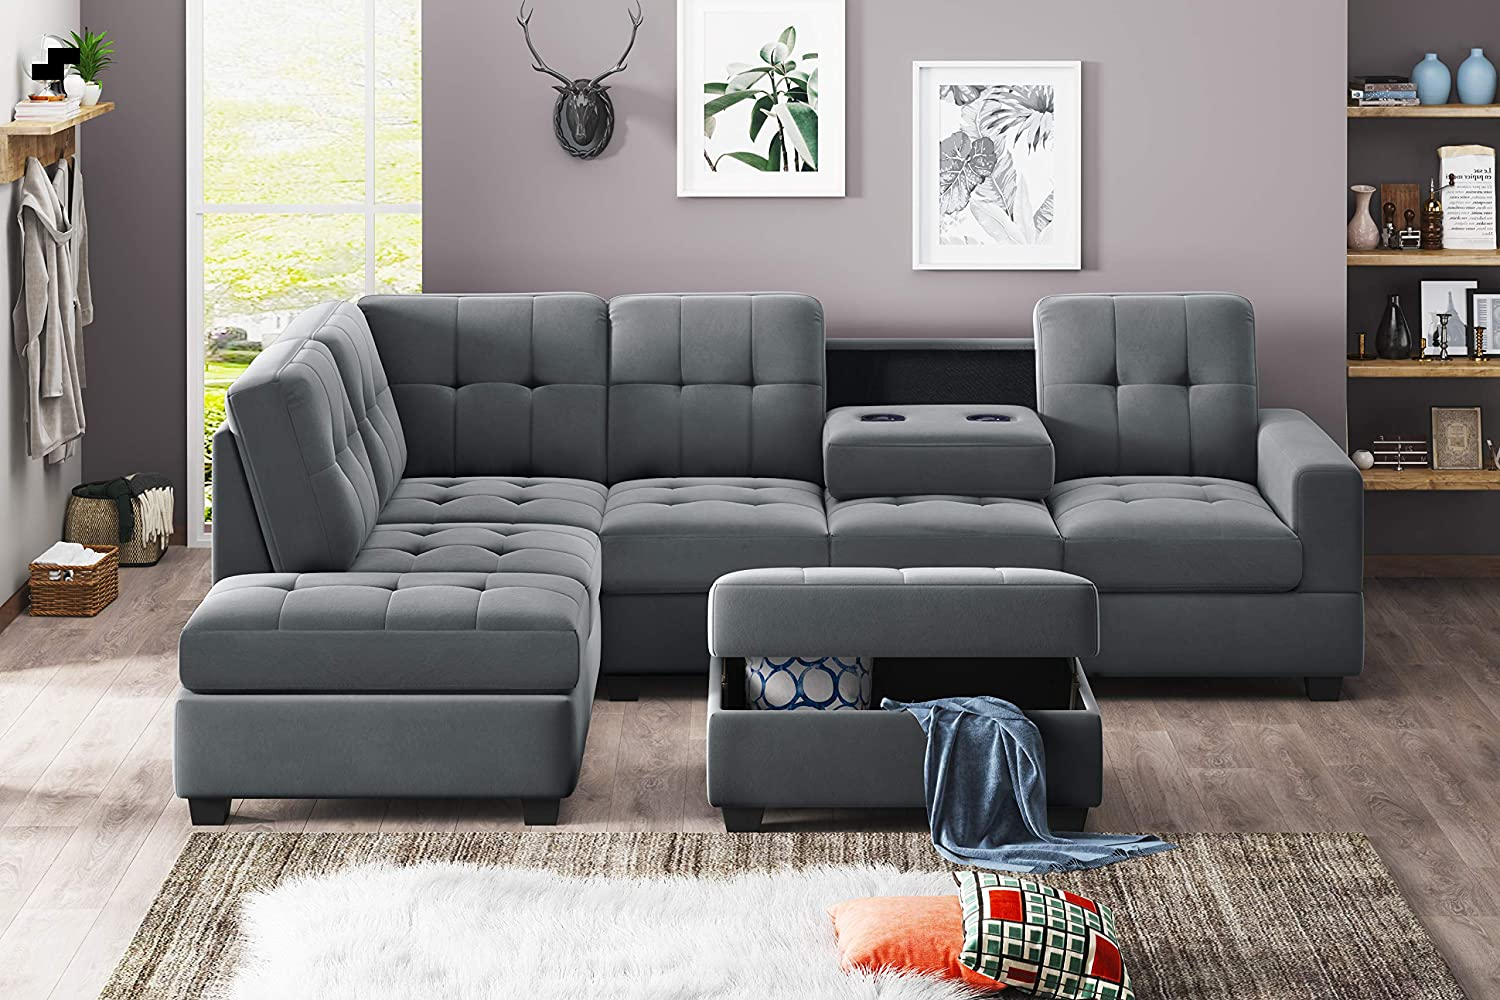 3-Piece Modular Sofa, Microfiber Sofa, with footrests and Cup Holders for Reclining Chair